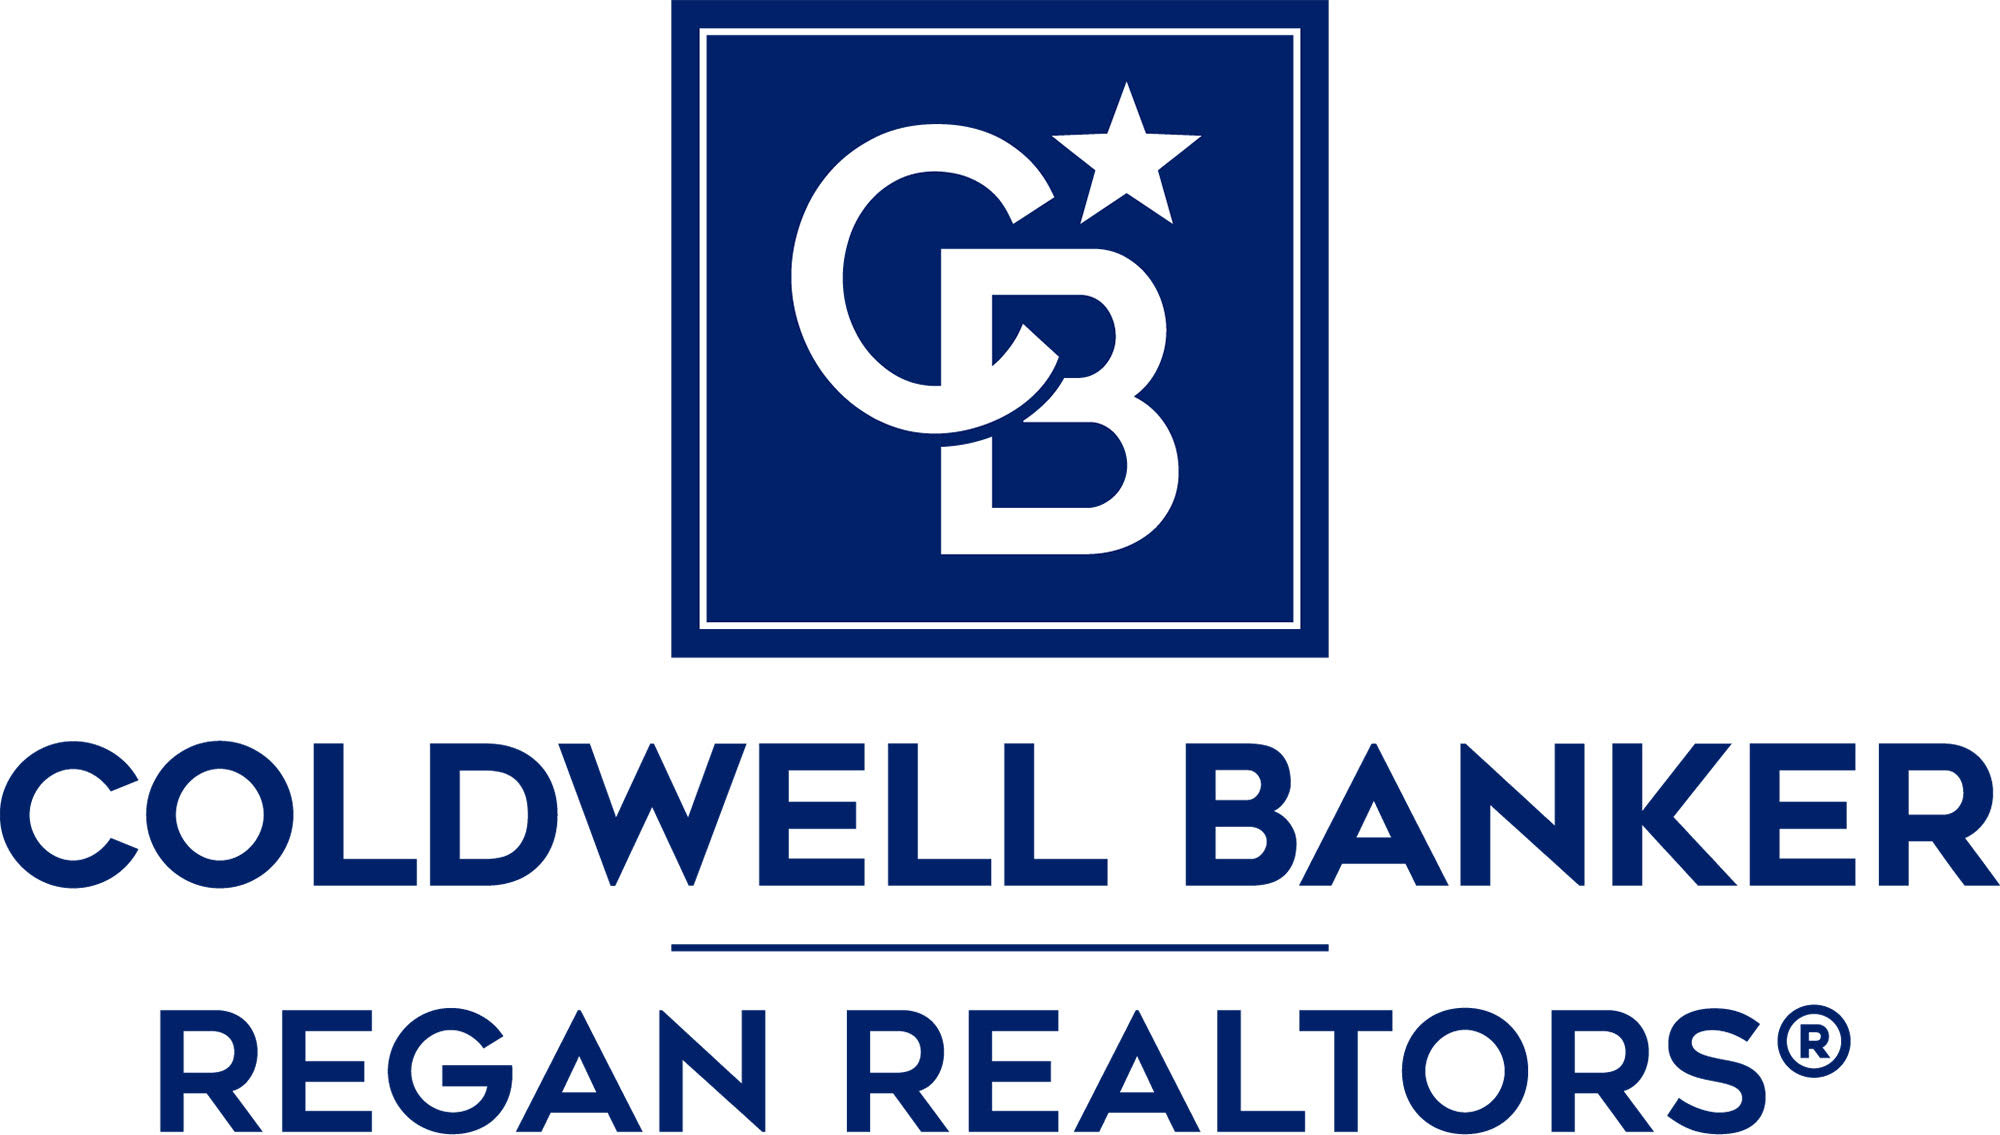 Jane Stockton - Coldwell Banker Regan